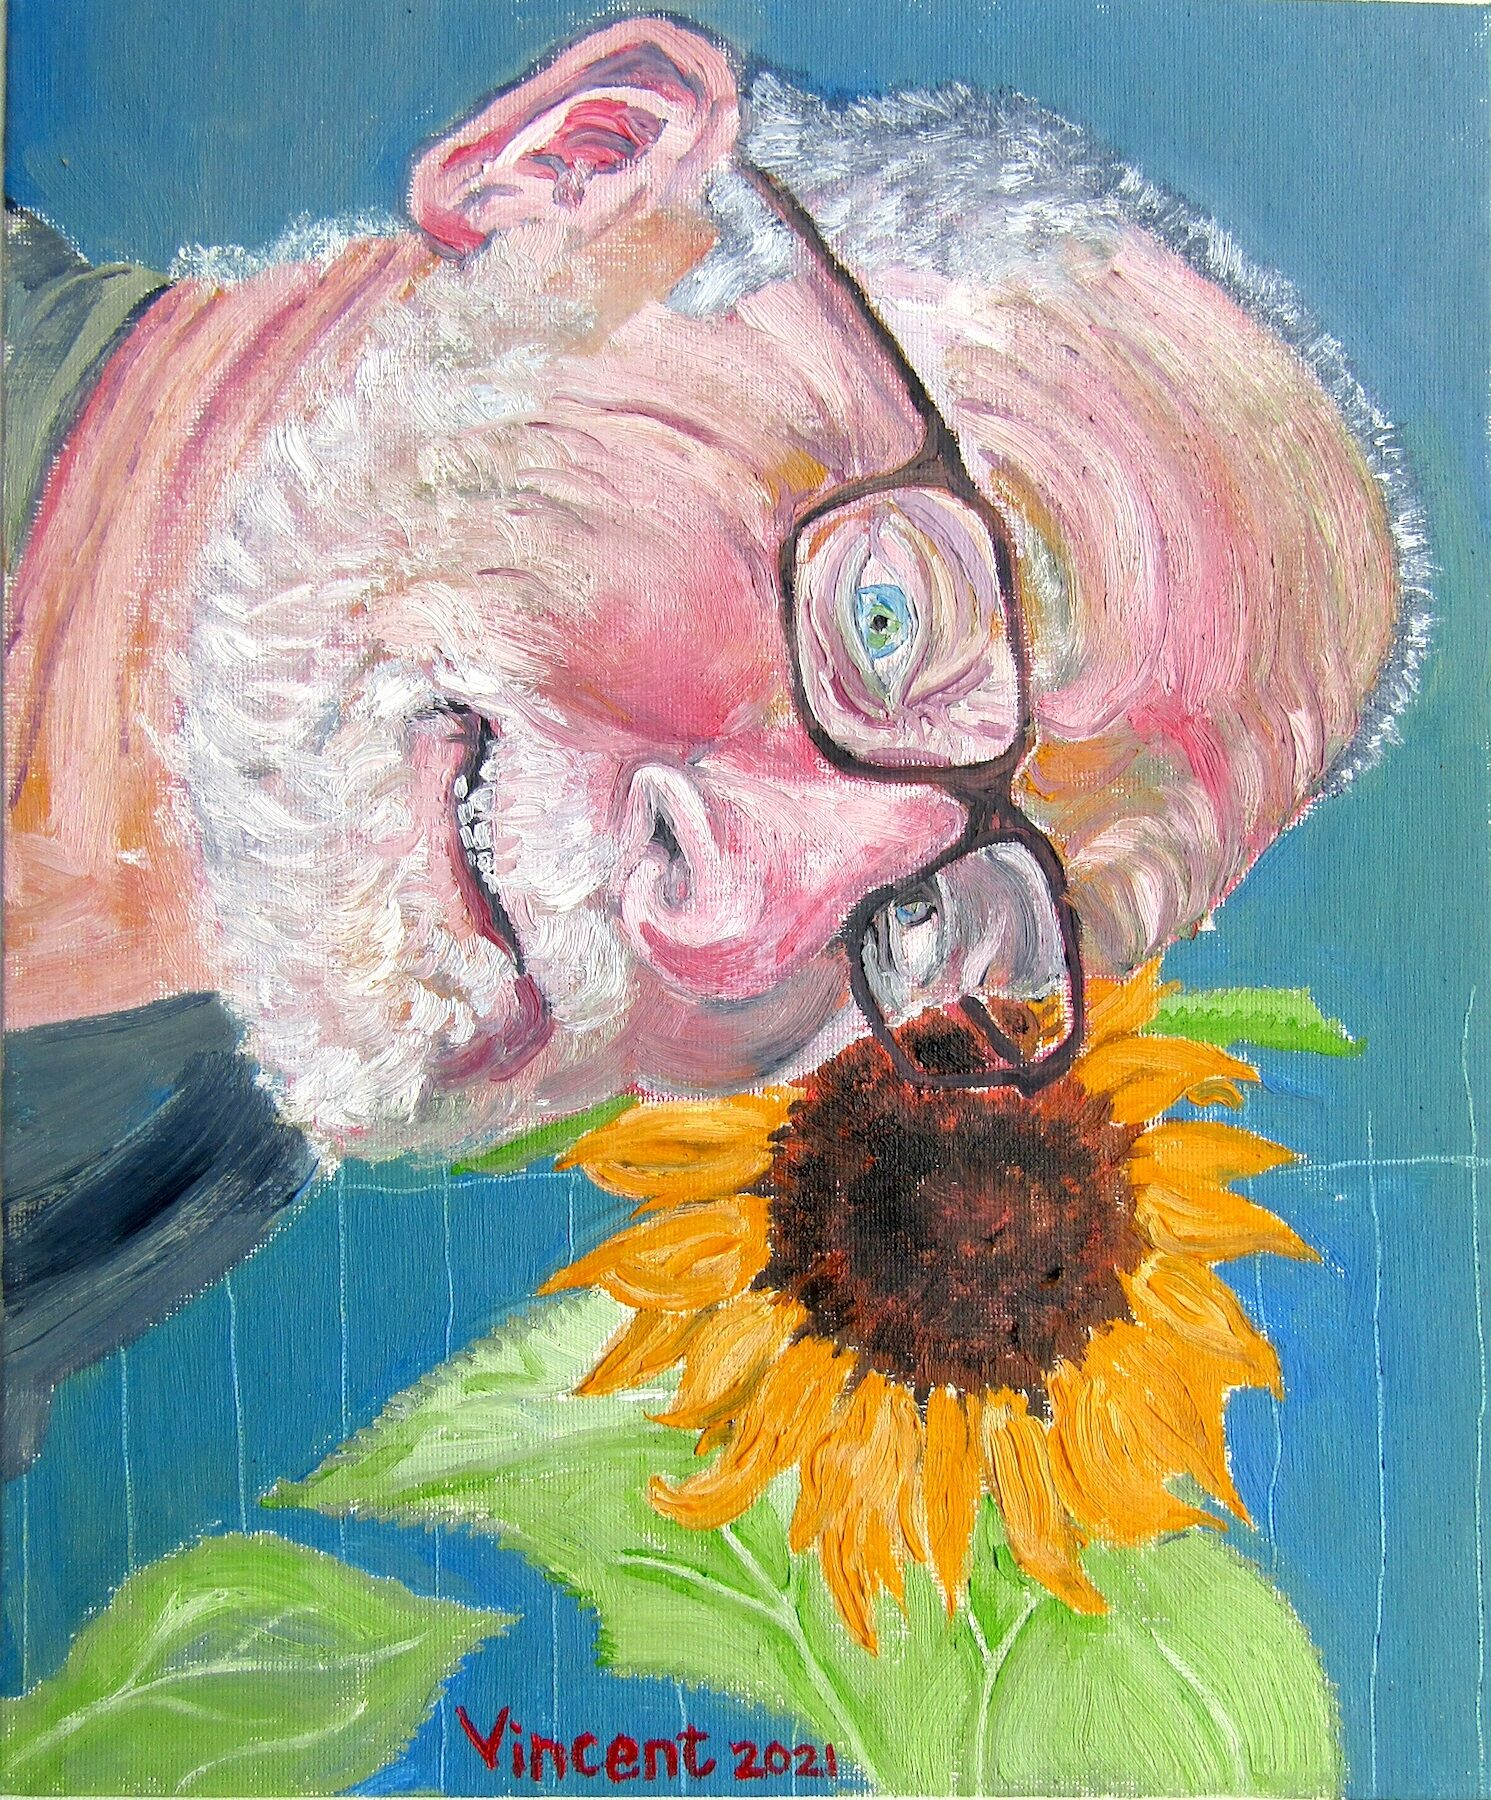 Oil portrait of a white male with a bald head pictured with a large sunflower, looking out of the canvas